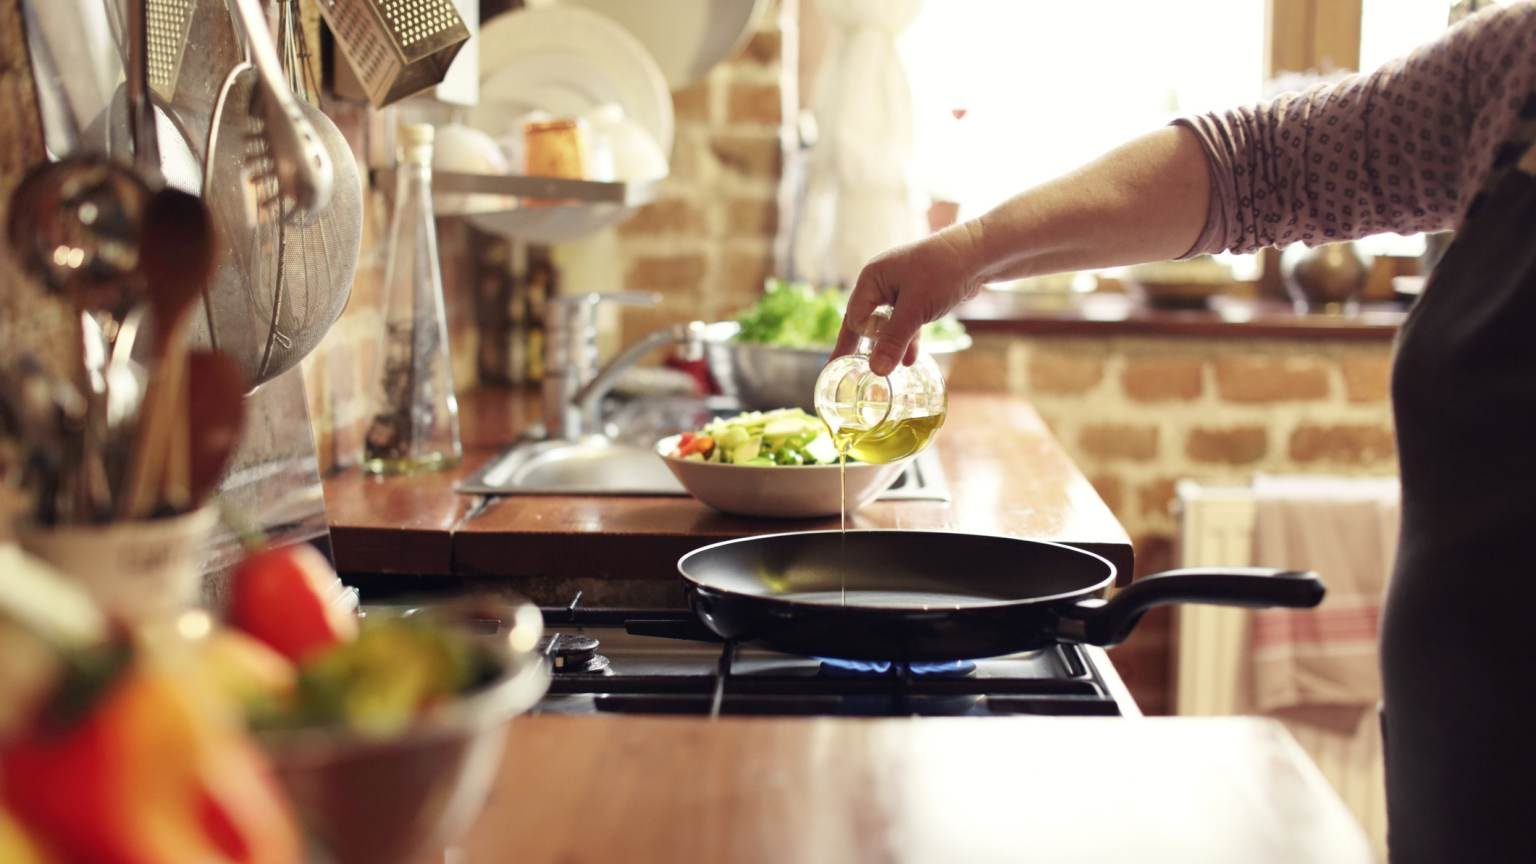 cooking vegetables in real, rustic kitchen. Natural light, short DOF, a little bit noisy.